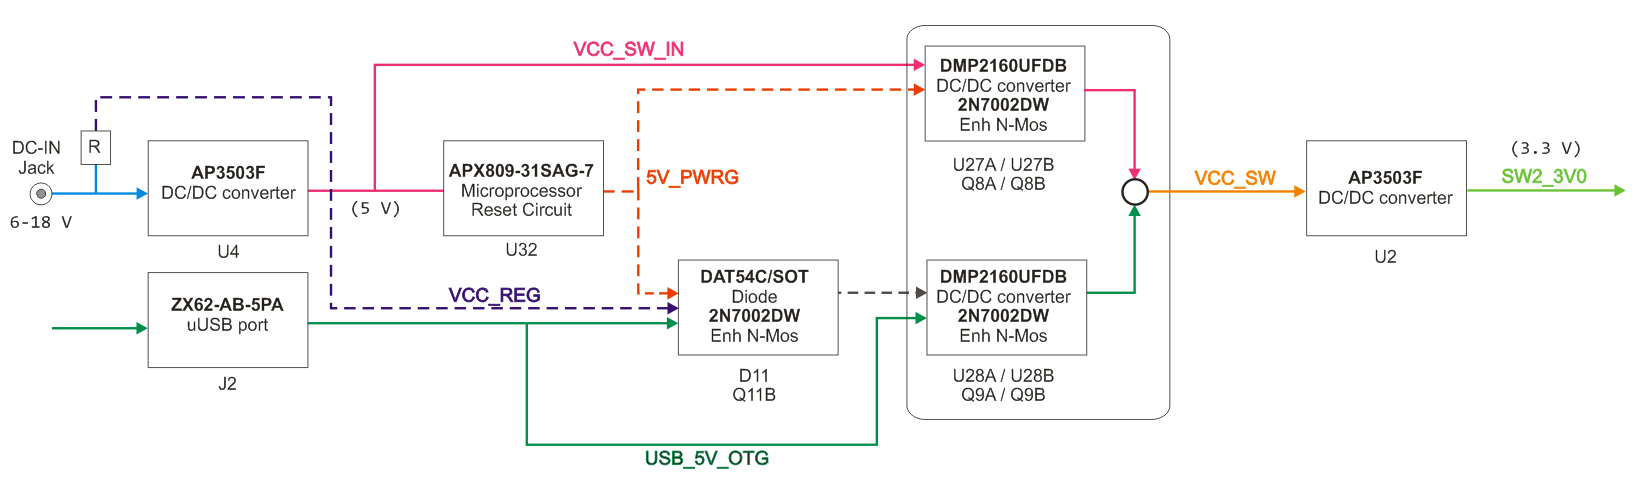 Power Management Udoo Neo Docs Dc Socket Wiring Diagram A Why Three Pins The E Block Allows To Only One Wire Arrive At Vcc Sw Node This Is Controlled By Signals 5v Pwrg And Output Of D